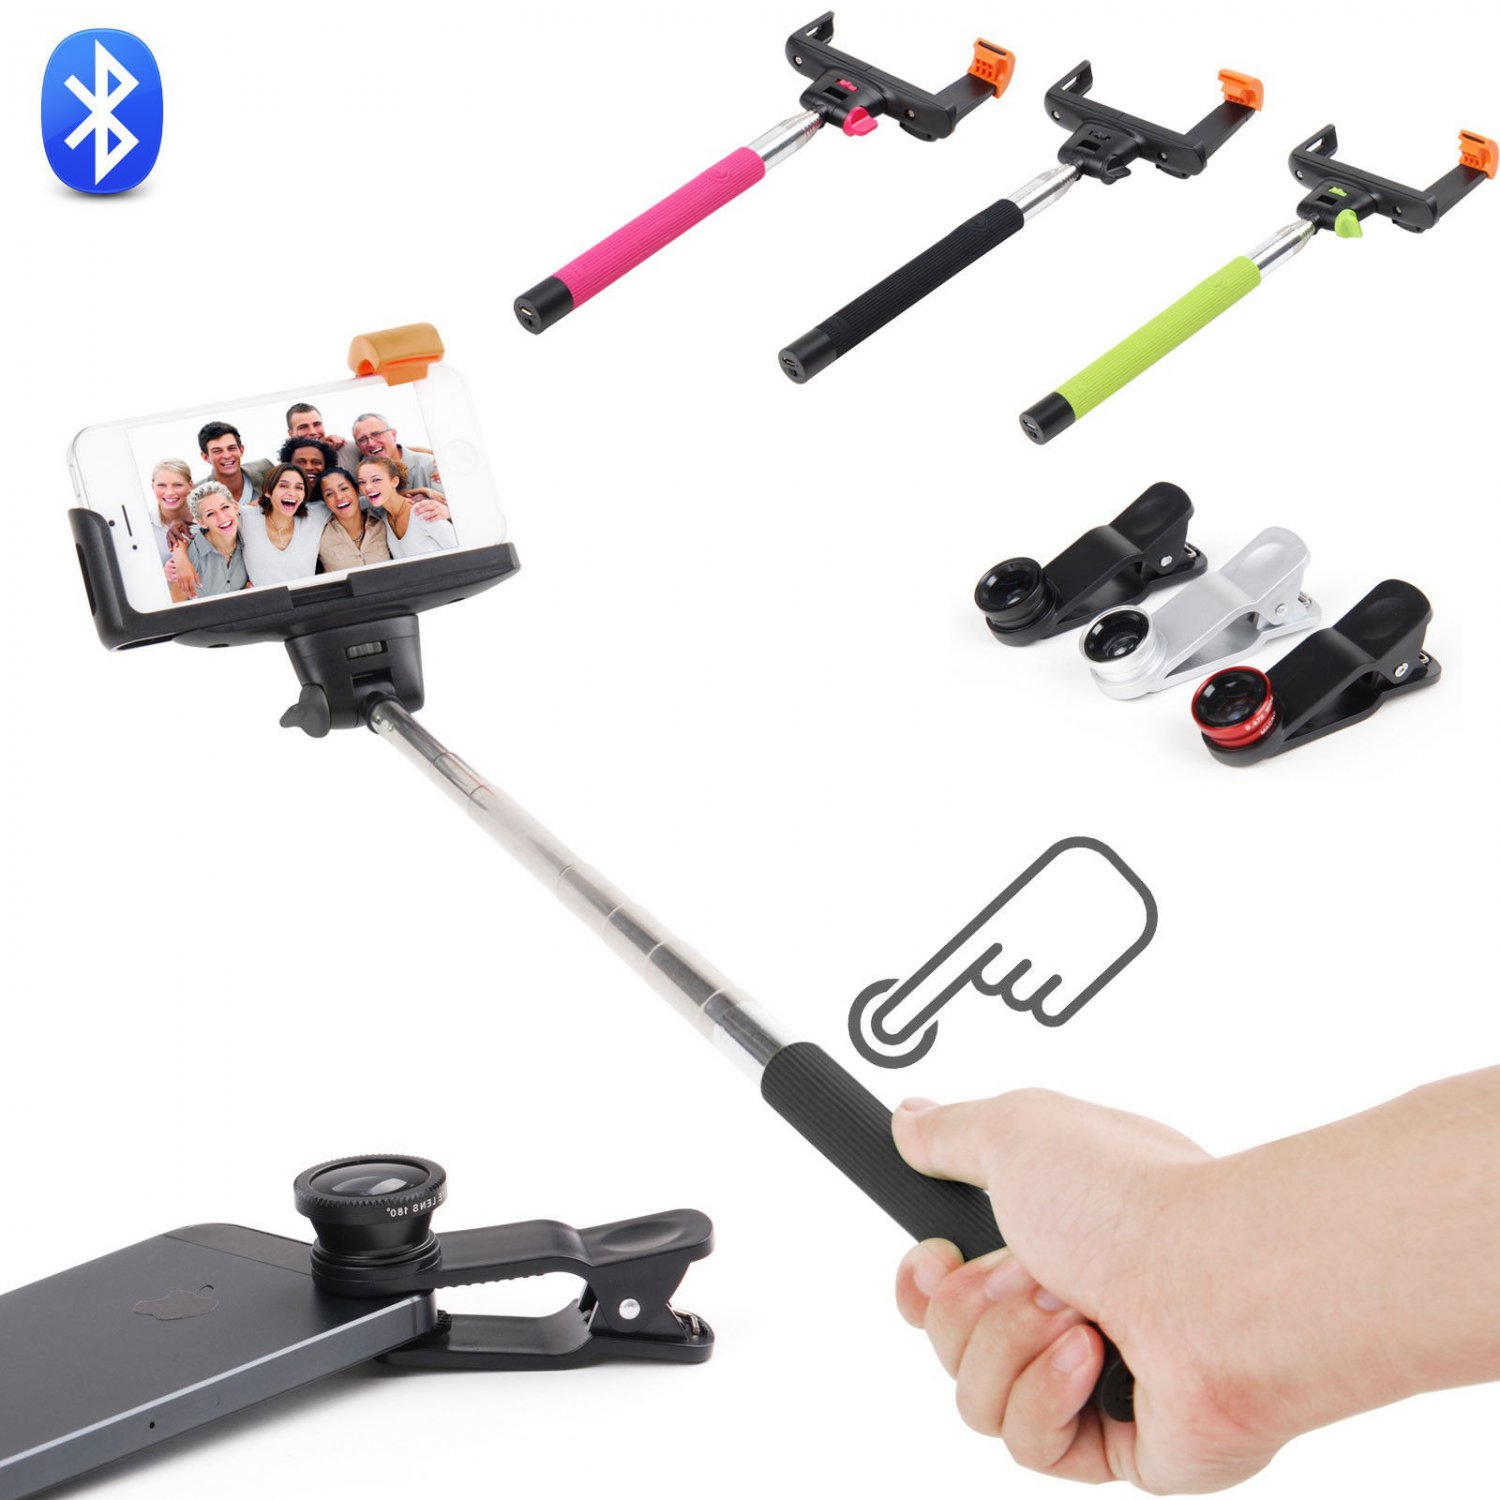 Bluetooth Extension Arm Selfie Fish Eye Lens Kit for iPhone 6 5s 5c 4s